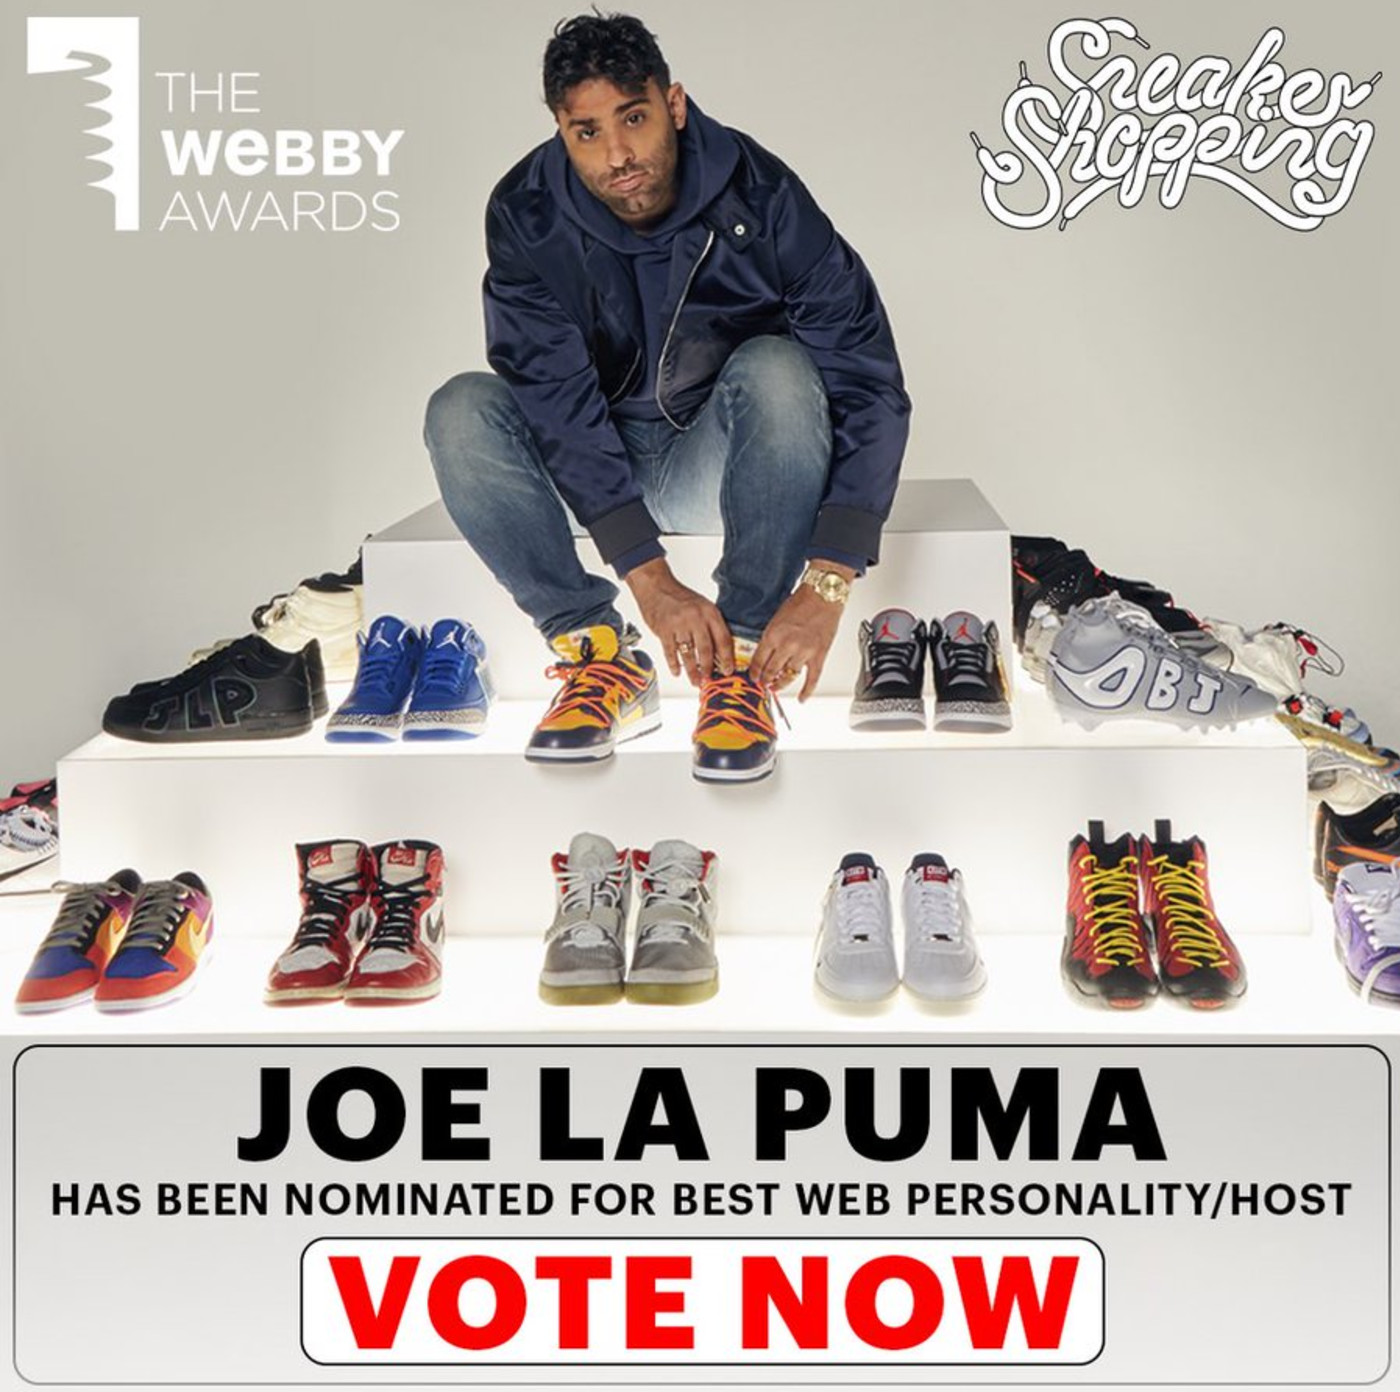 Joe La Puma 'Sneaker Shopping' The Webby Awards